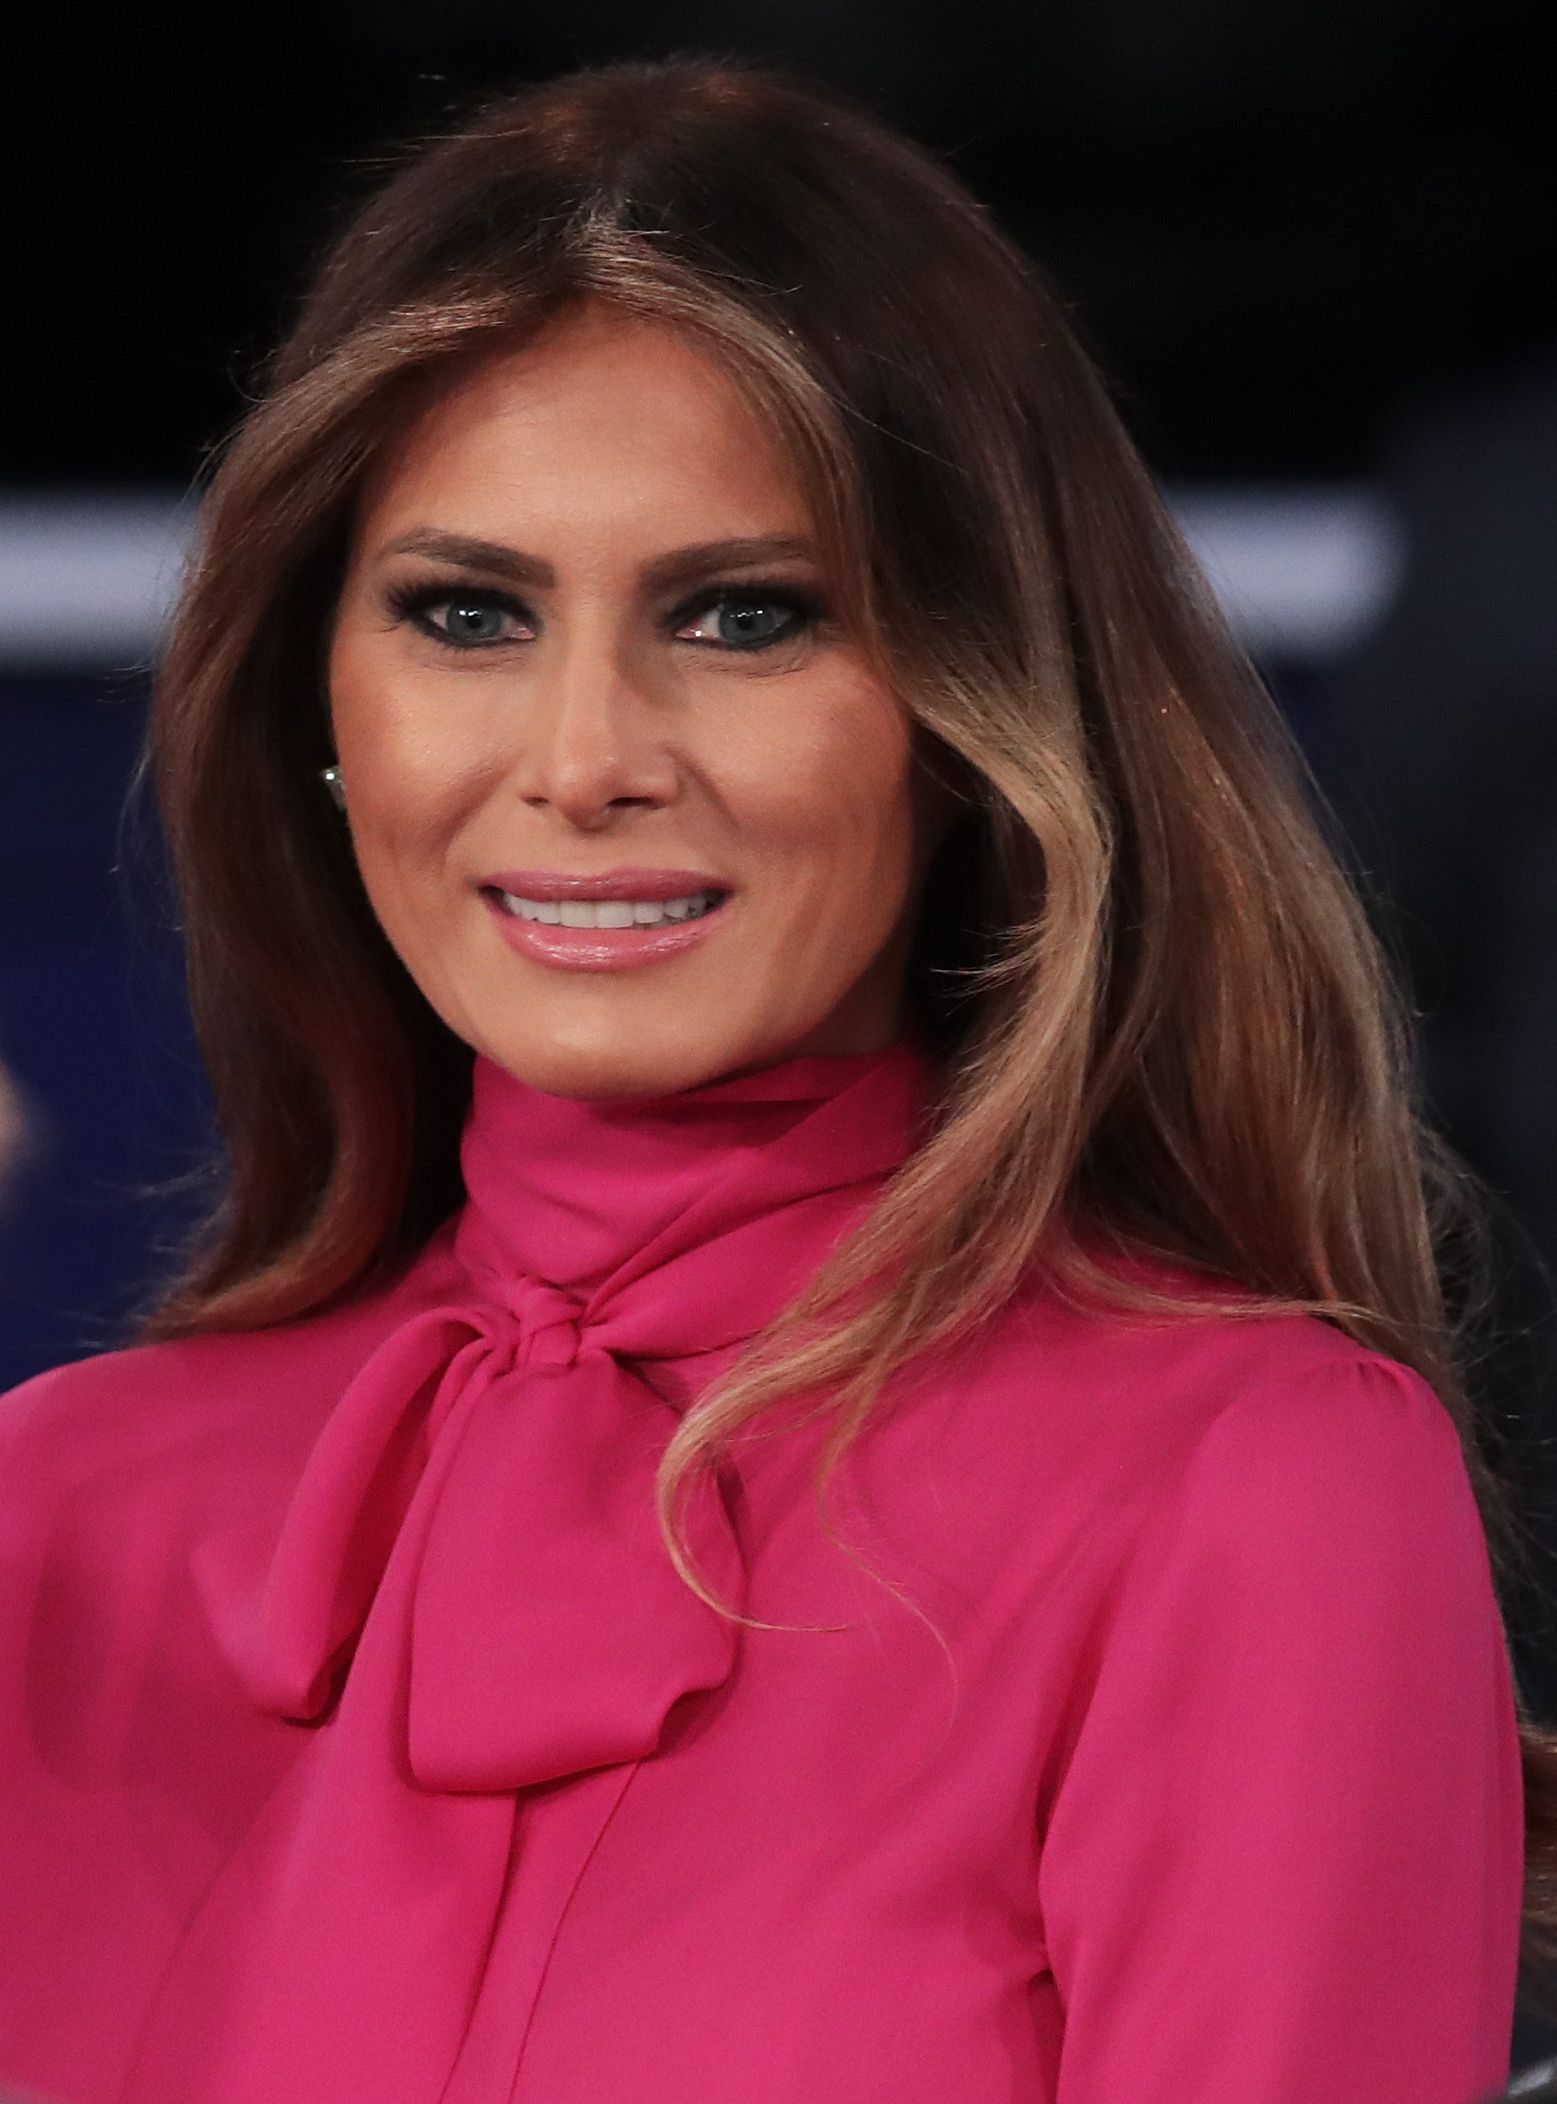 Melania Trump S Blouse Could Be Subtly Shading Her Husband First